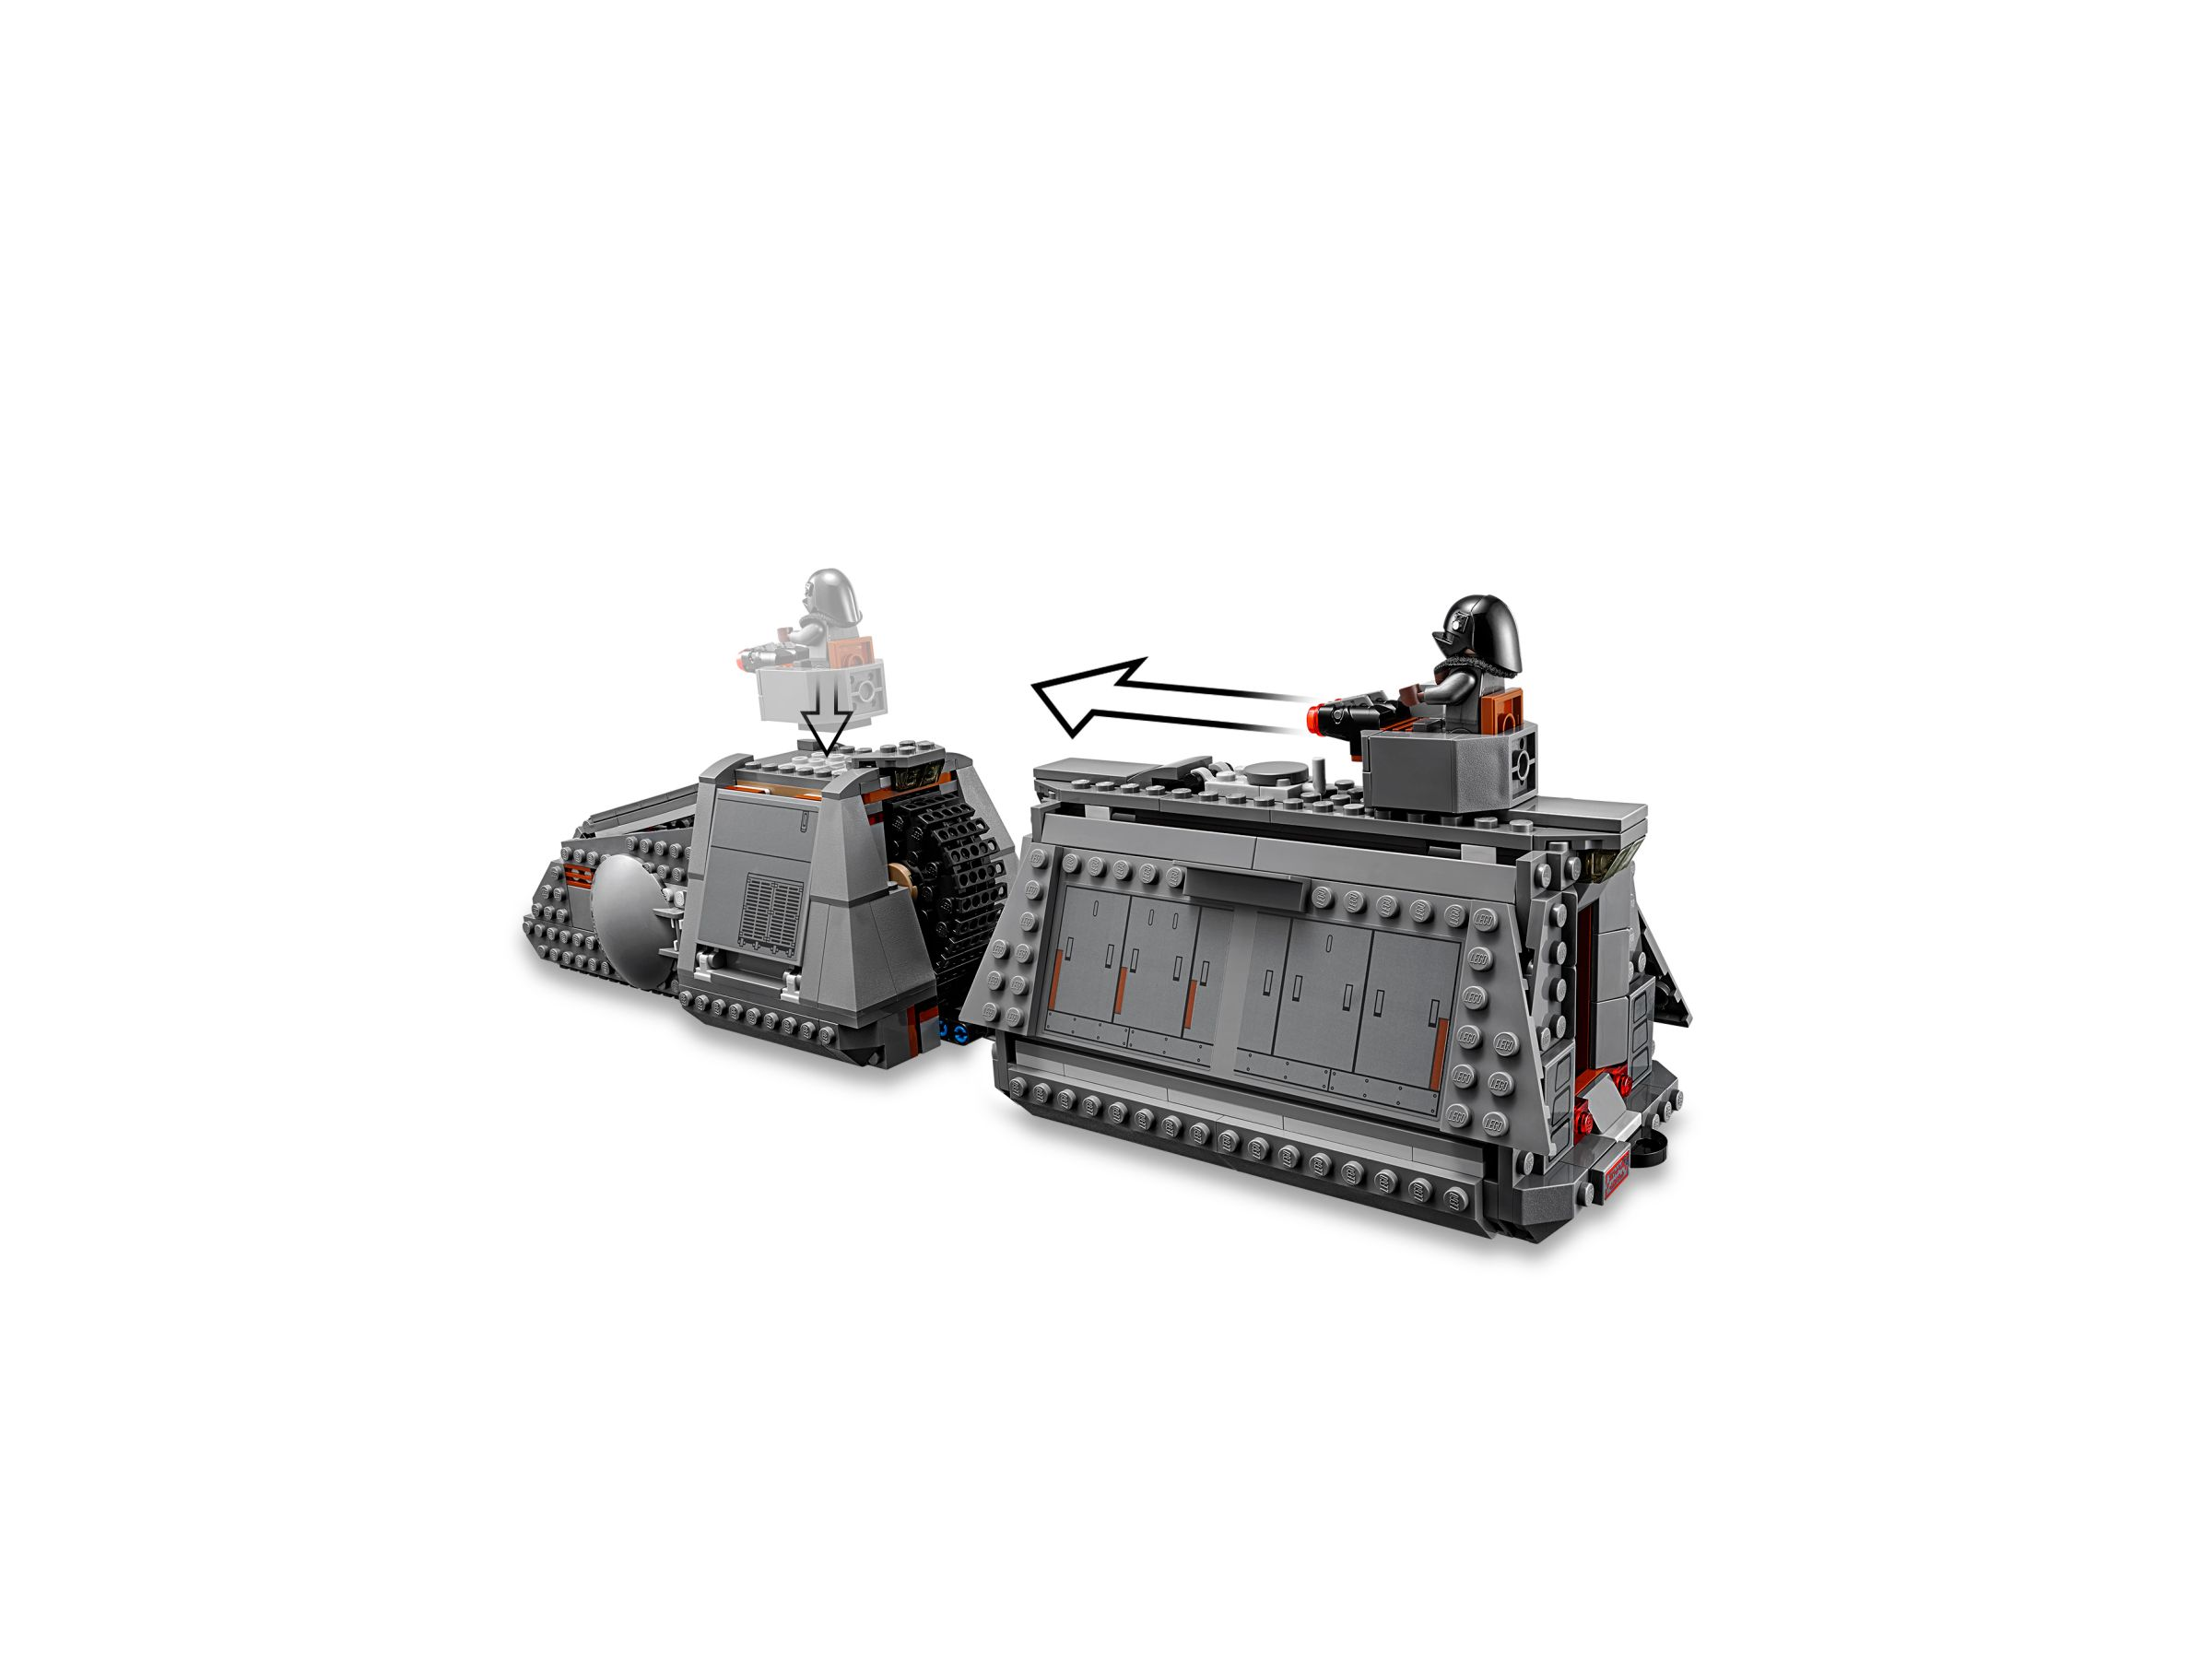 LEGO Star Wars 75217 Imperial Conveyex Transport™ LEGO_75217_alt3.jpg